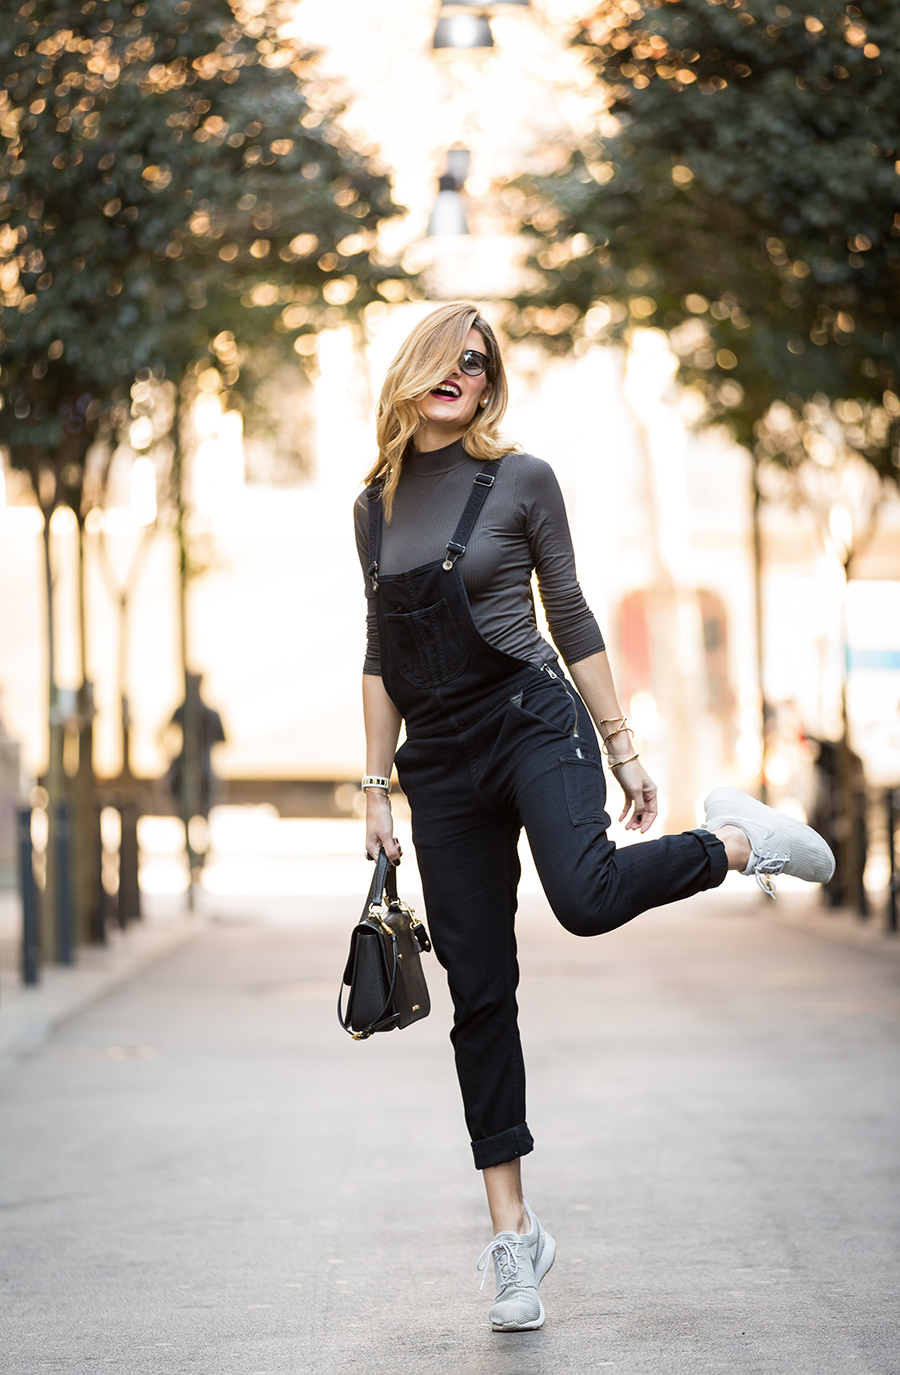 fotografo-street-style-Guillem-Calatrava_Silviaboschblog_Barcelona-Style_black-and-grey-outfit